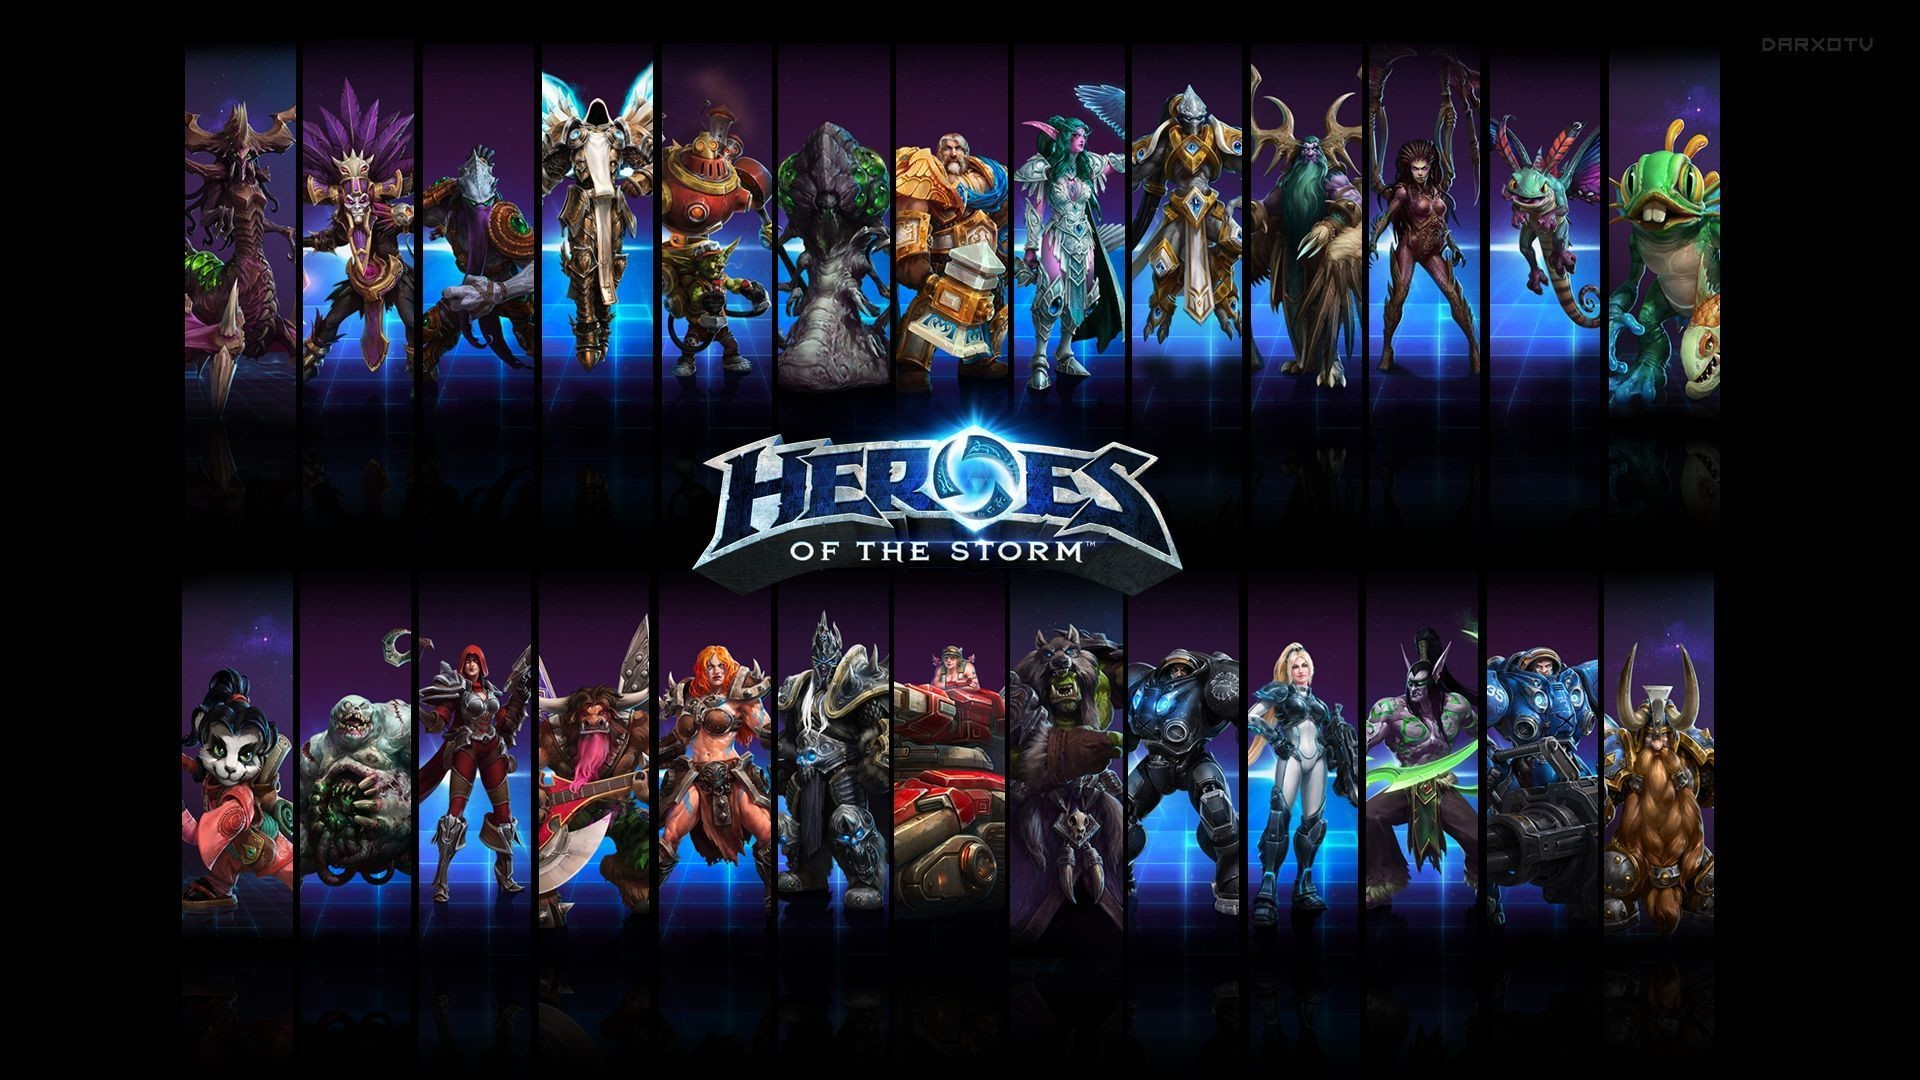 1920x1080 Game-Heroes-Blizzard-Entertainment-All-Characters-Wallpapers.jpg